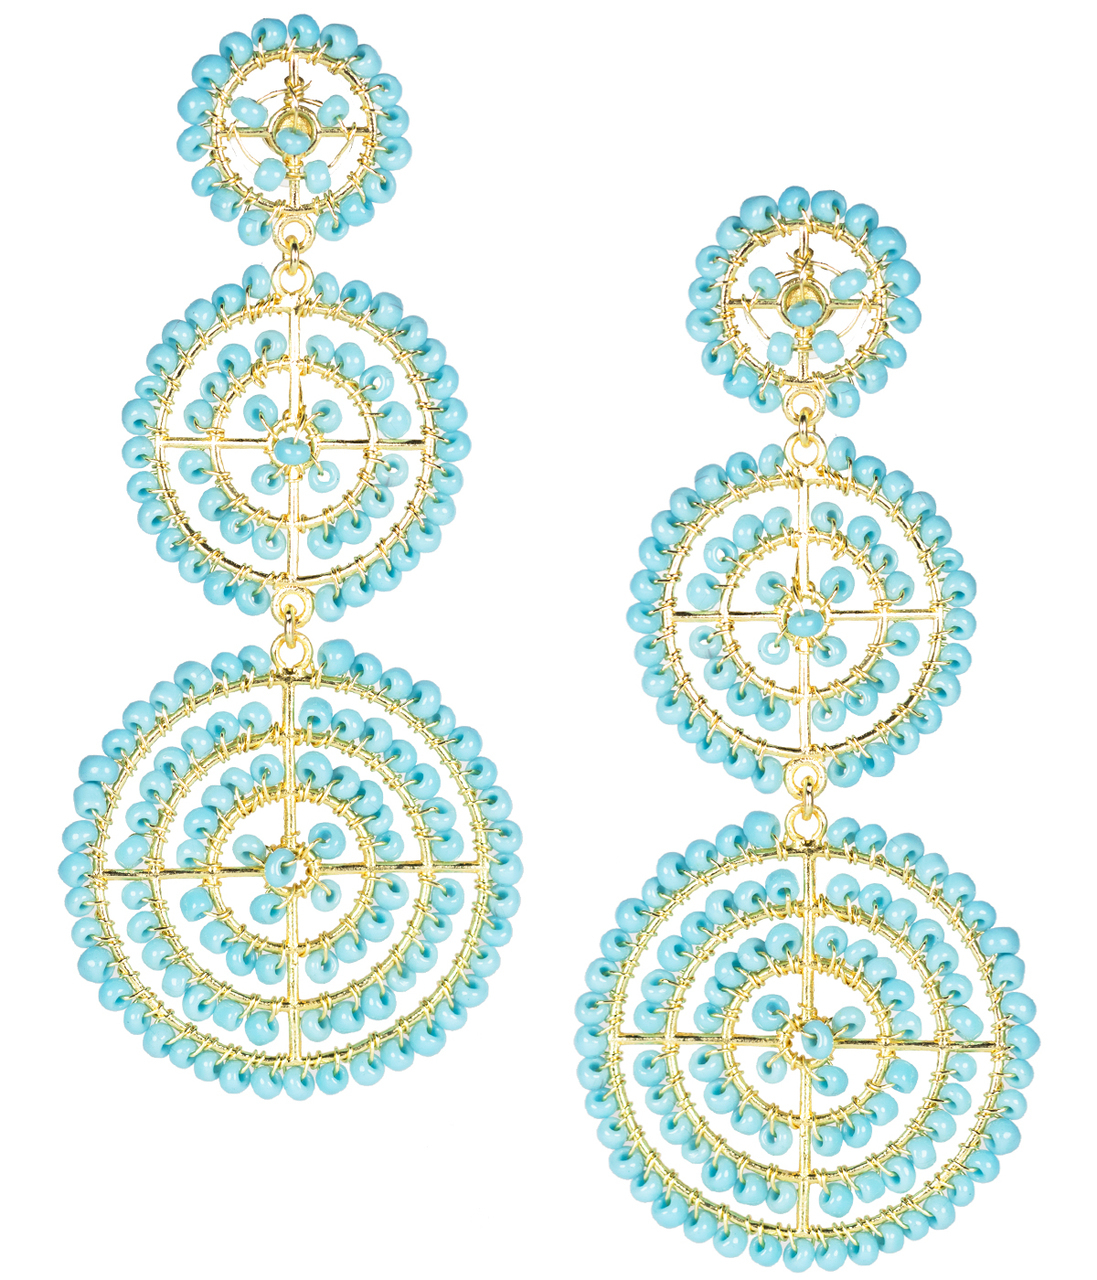 Greta Turquoise Earrings by LISI LERCH